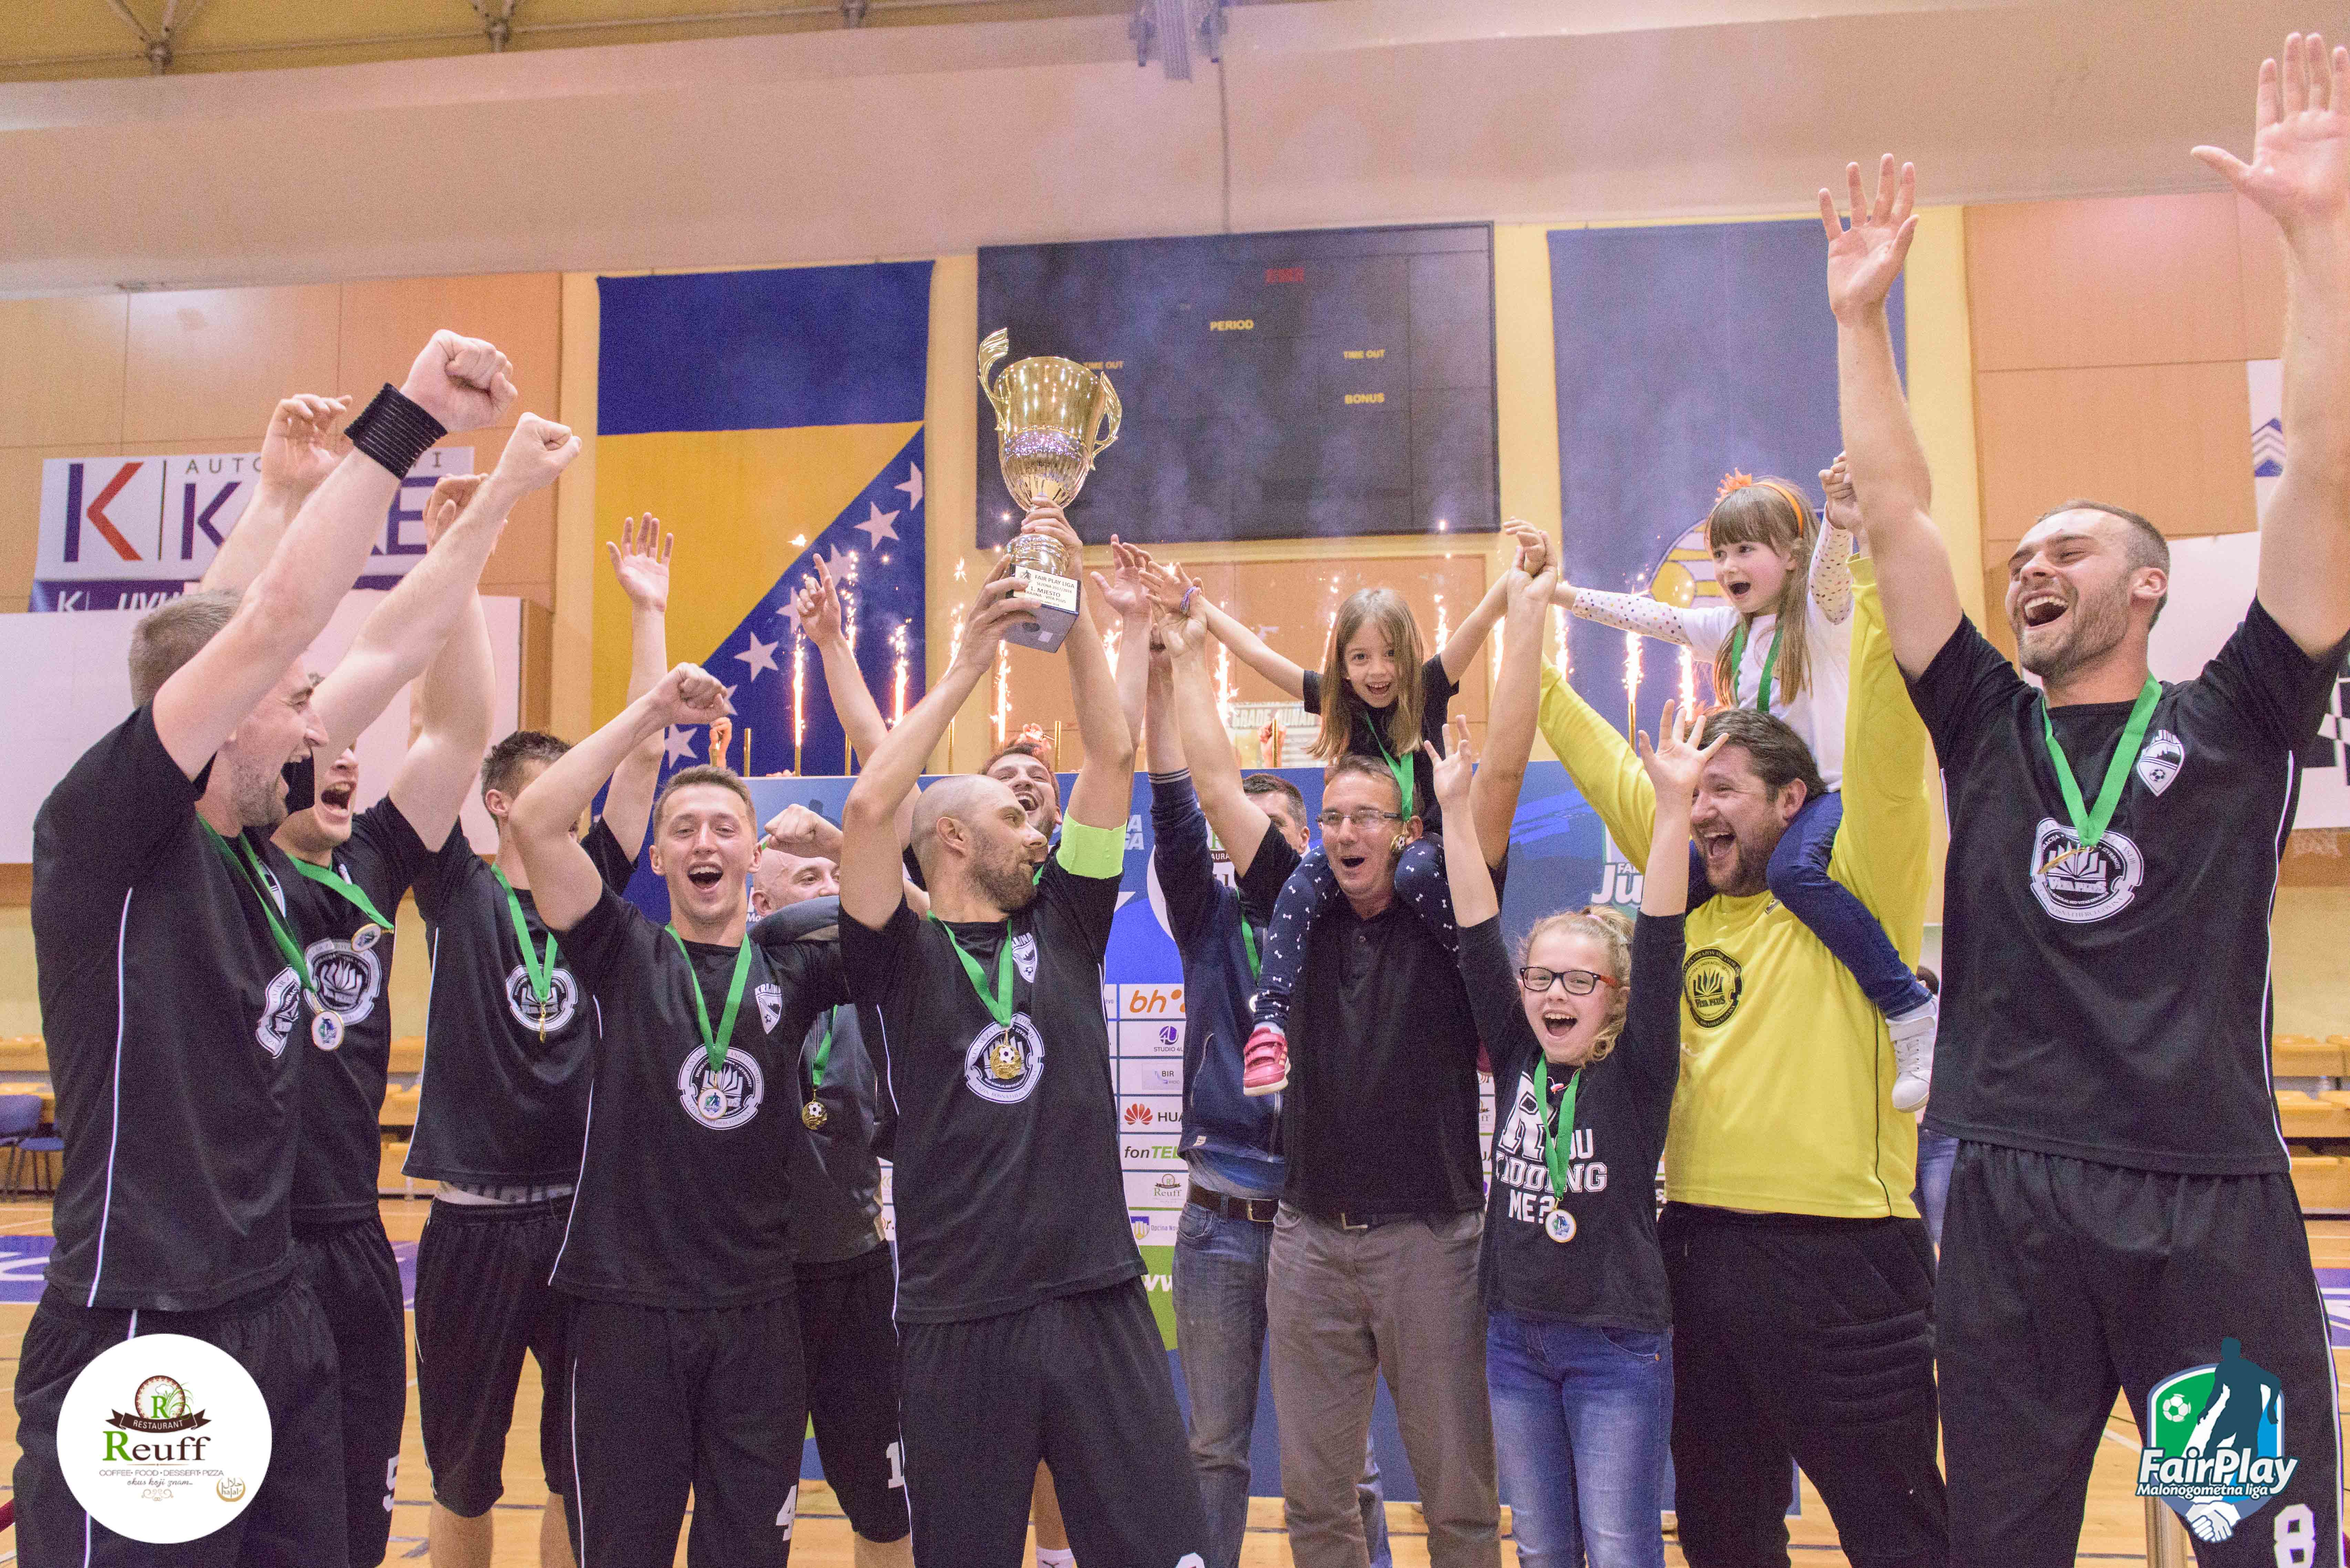 ZAVRŠENA 6. SEZONA FAIR PLAY LIGE - KRAJINA – VITA PLUS ŠAMPION